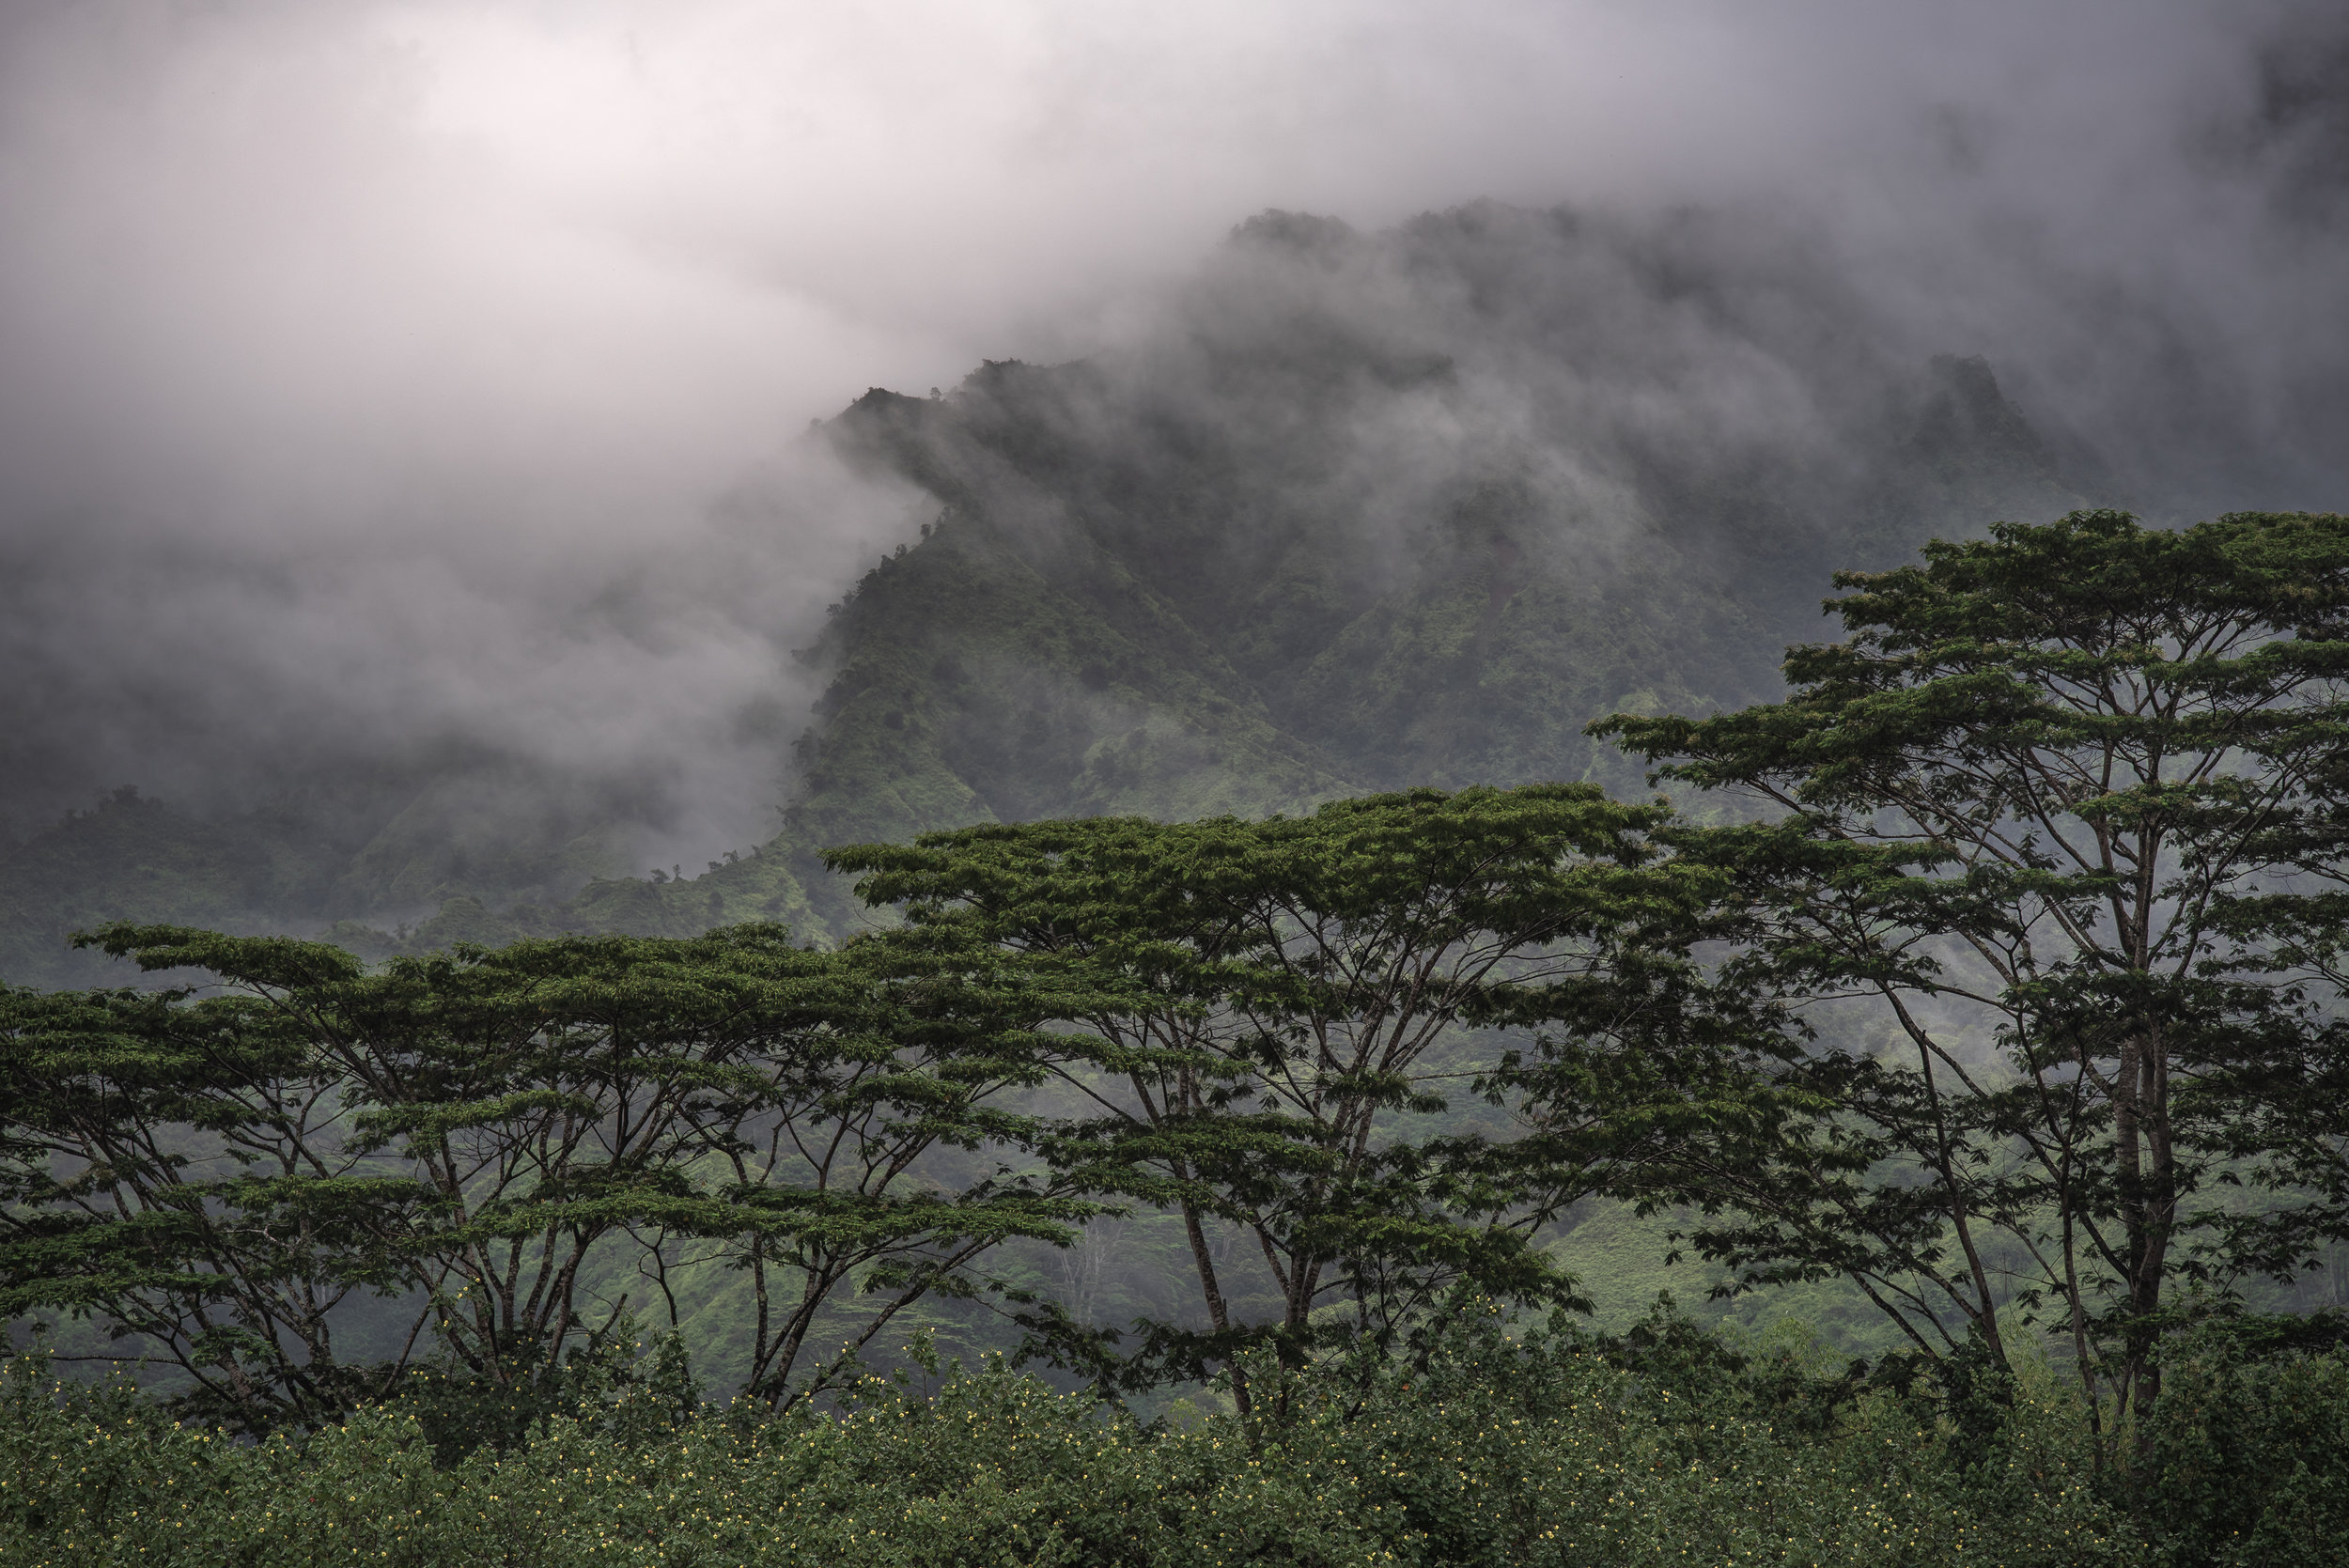 jurassic kauai mountains trees landscape